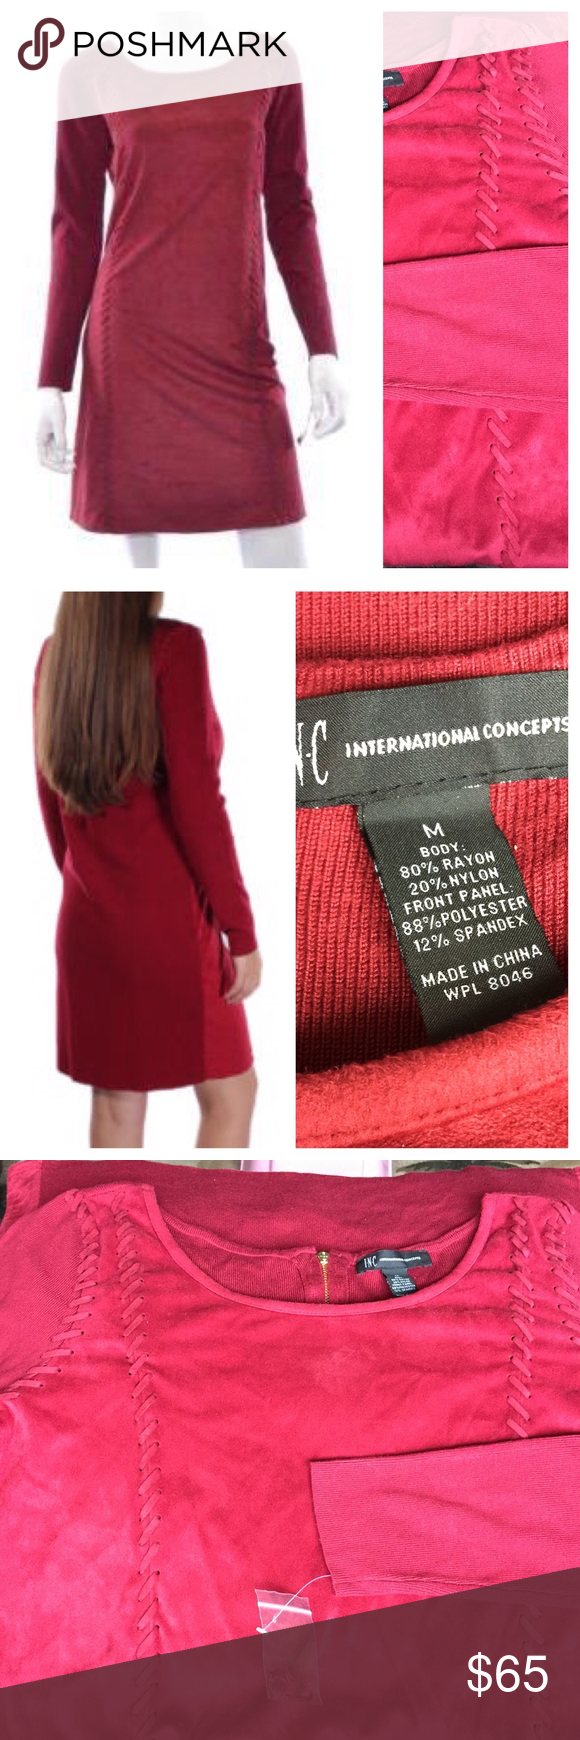 INC Berry Whip-stitch Moleskin Dress 🌴 NWT - Inc International Concepts - Whip-stitch Moleskin Dress, the color is On Glazed Berry. The front of the dress is the soft moleskin and the back and long sleeves are sweater-like material. Gold zipper down the back. INC International Concepts Dresses